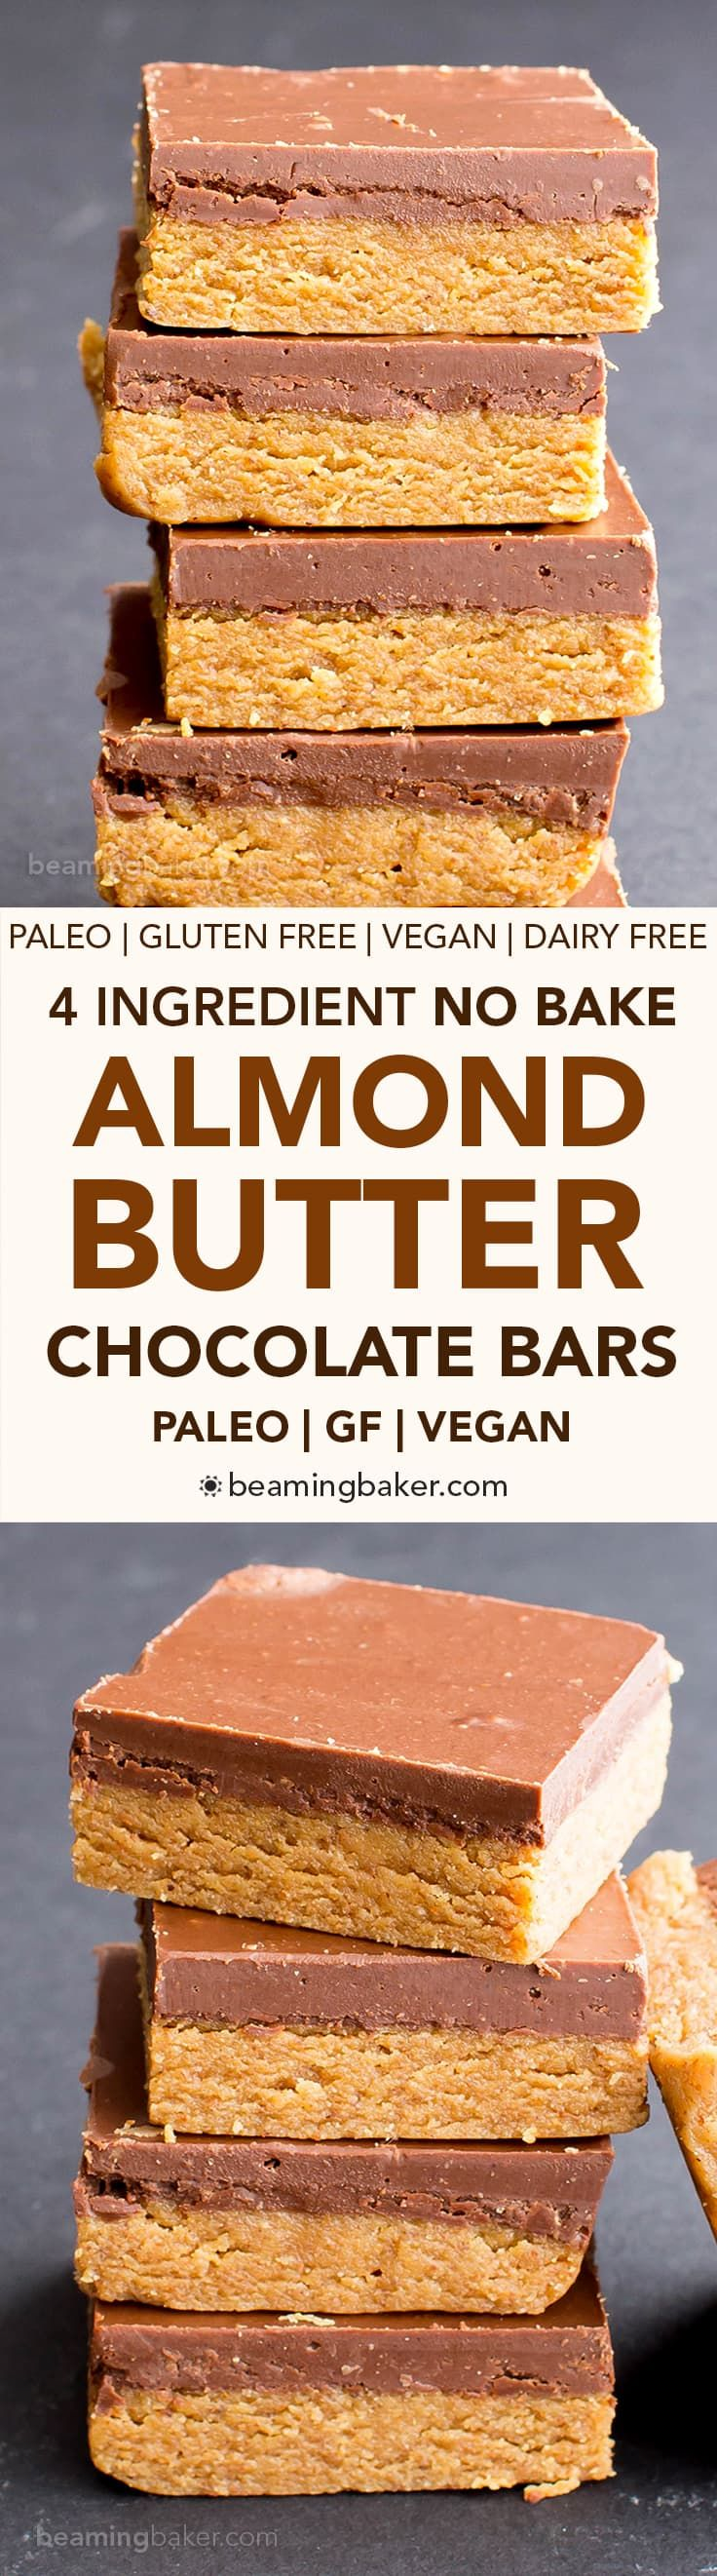 No Bake Paleo Chocolate Almond Butter Bars (V, GF, Paleo): a 4-ingredient no bake recipe for thick, decadent almond butter bars topped with chocolate. V, GF